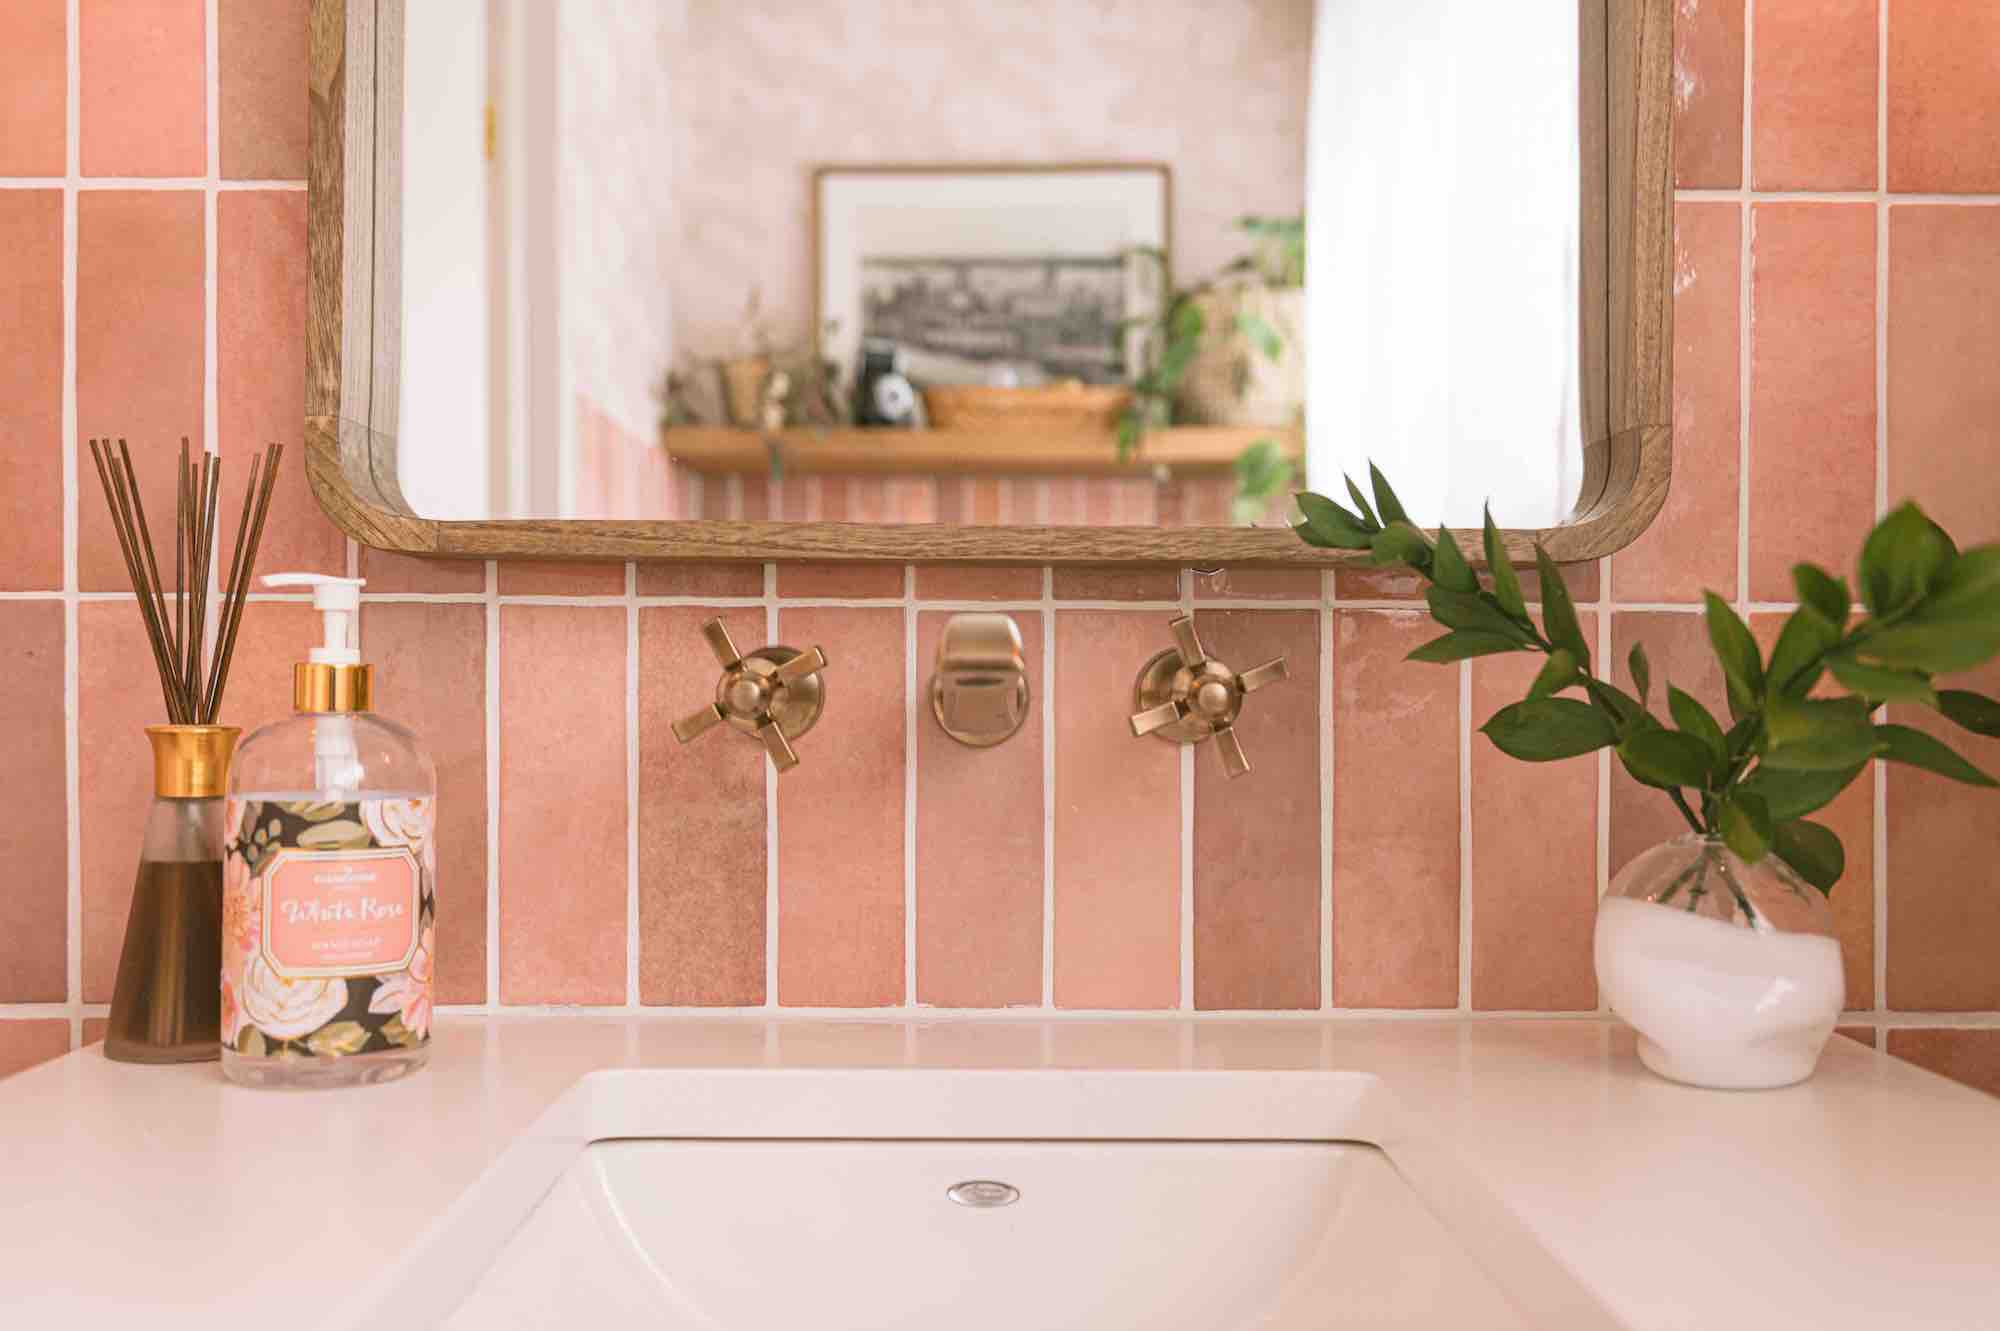 Image of DIY MOM 11 2 in Think pink! Rebekah Higgs transforms her powder room into a tropical retreat - Cosentino